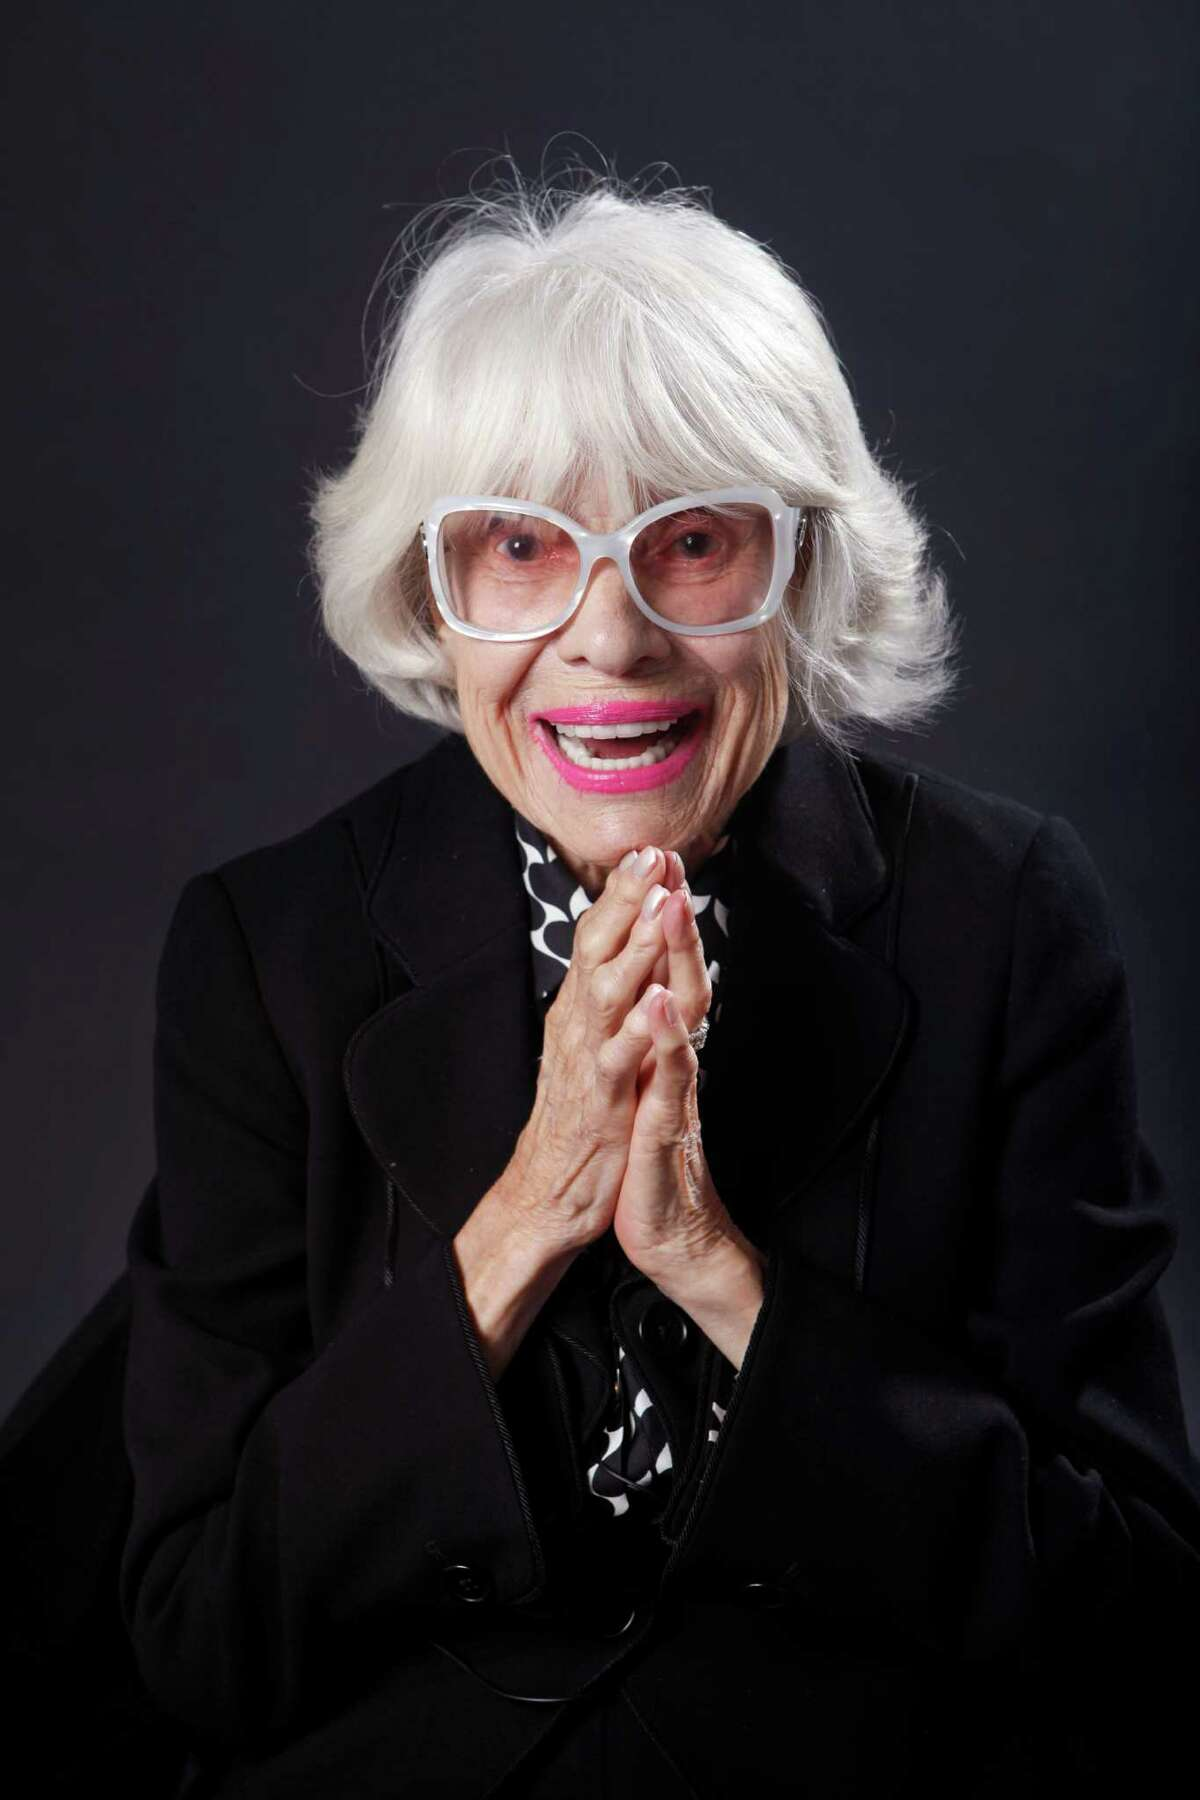 Carol Channing poses for a portrait during a visit to the San Francisco Chronicle on November 5, 2014 in San Francisco, Calif. Channing asked to visit the newsroom because her father's best friend worked at the paper in the 1920s.